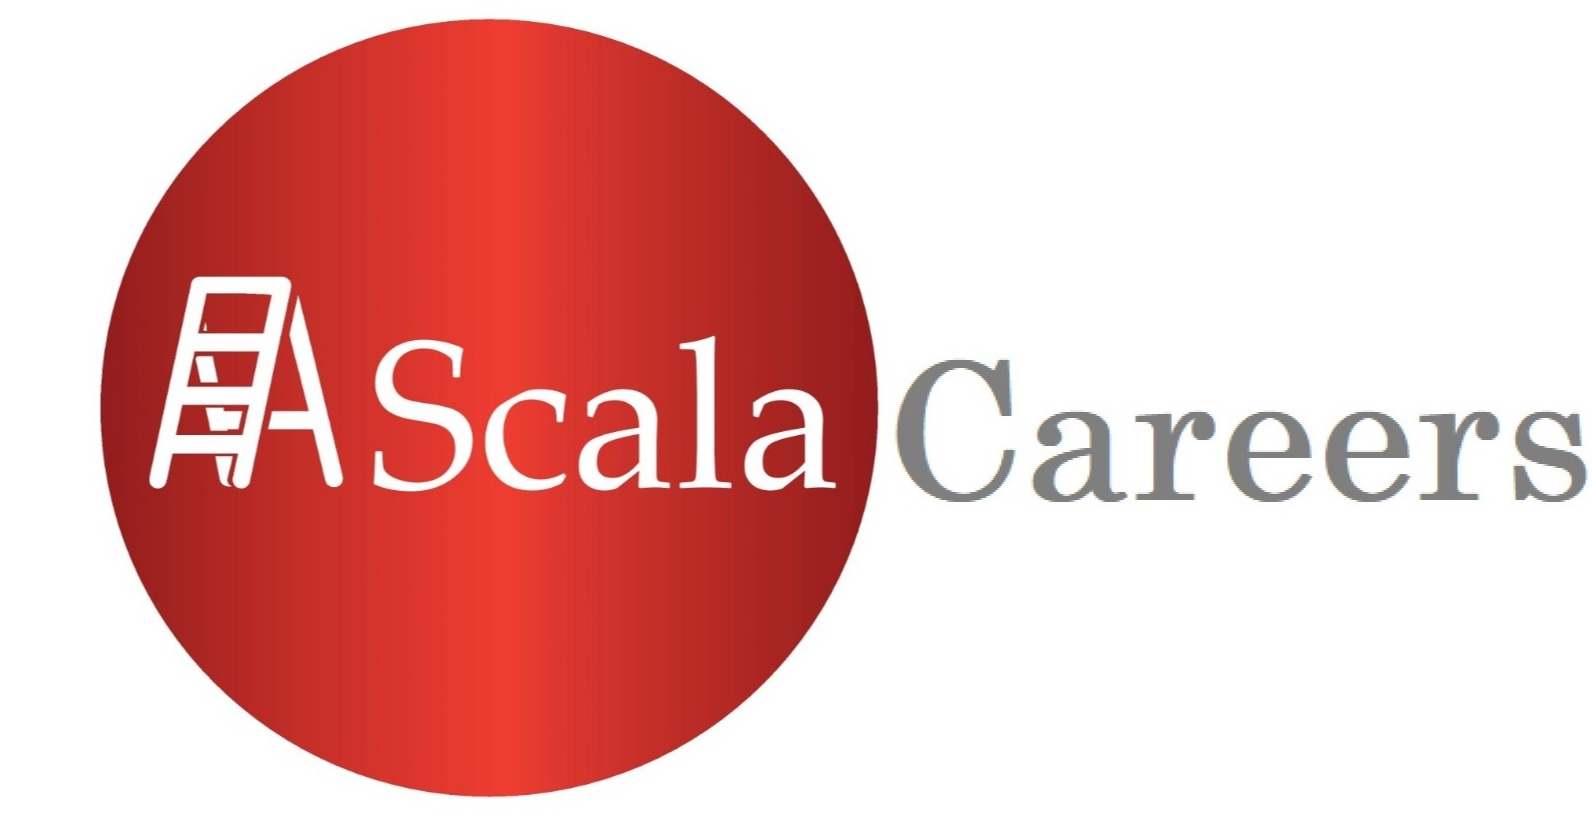 Scala Careers